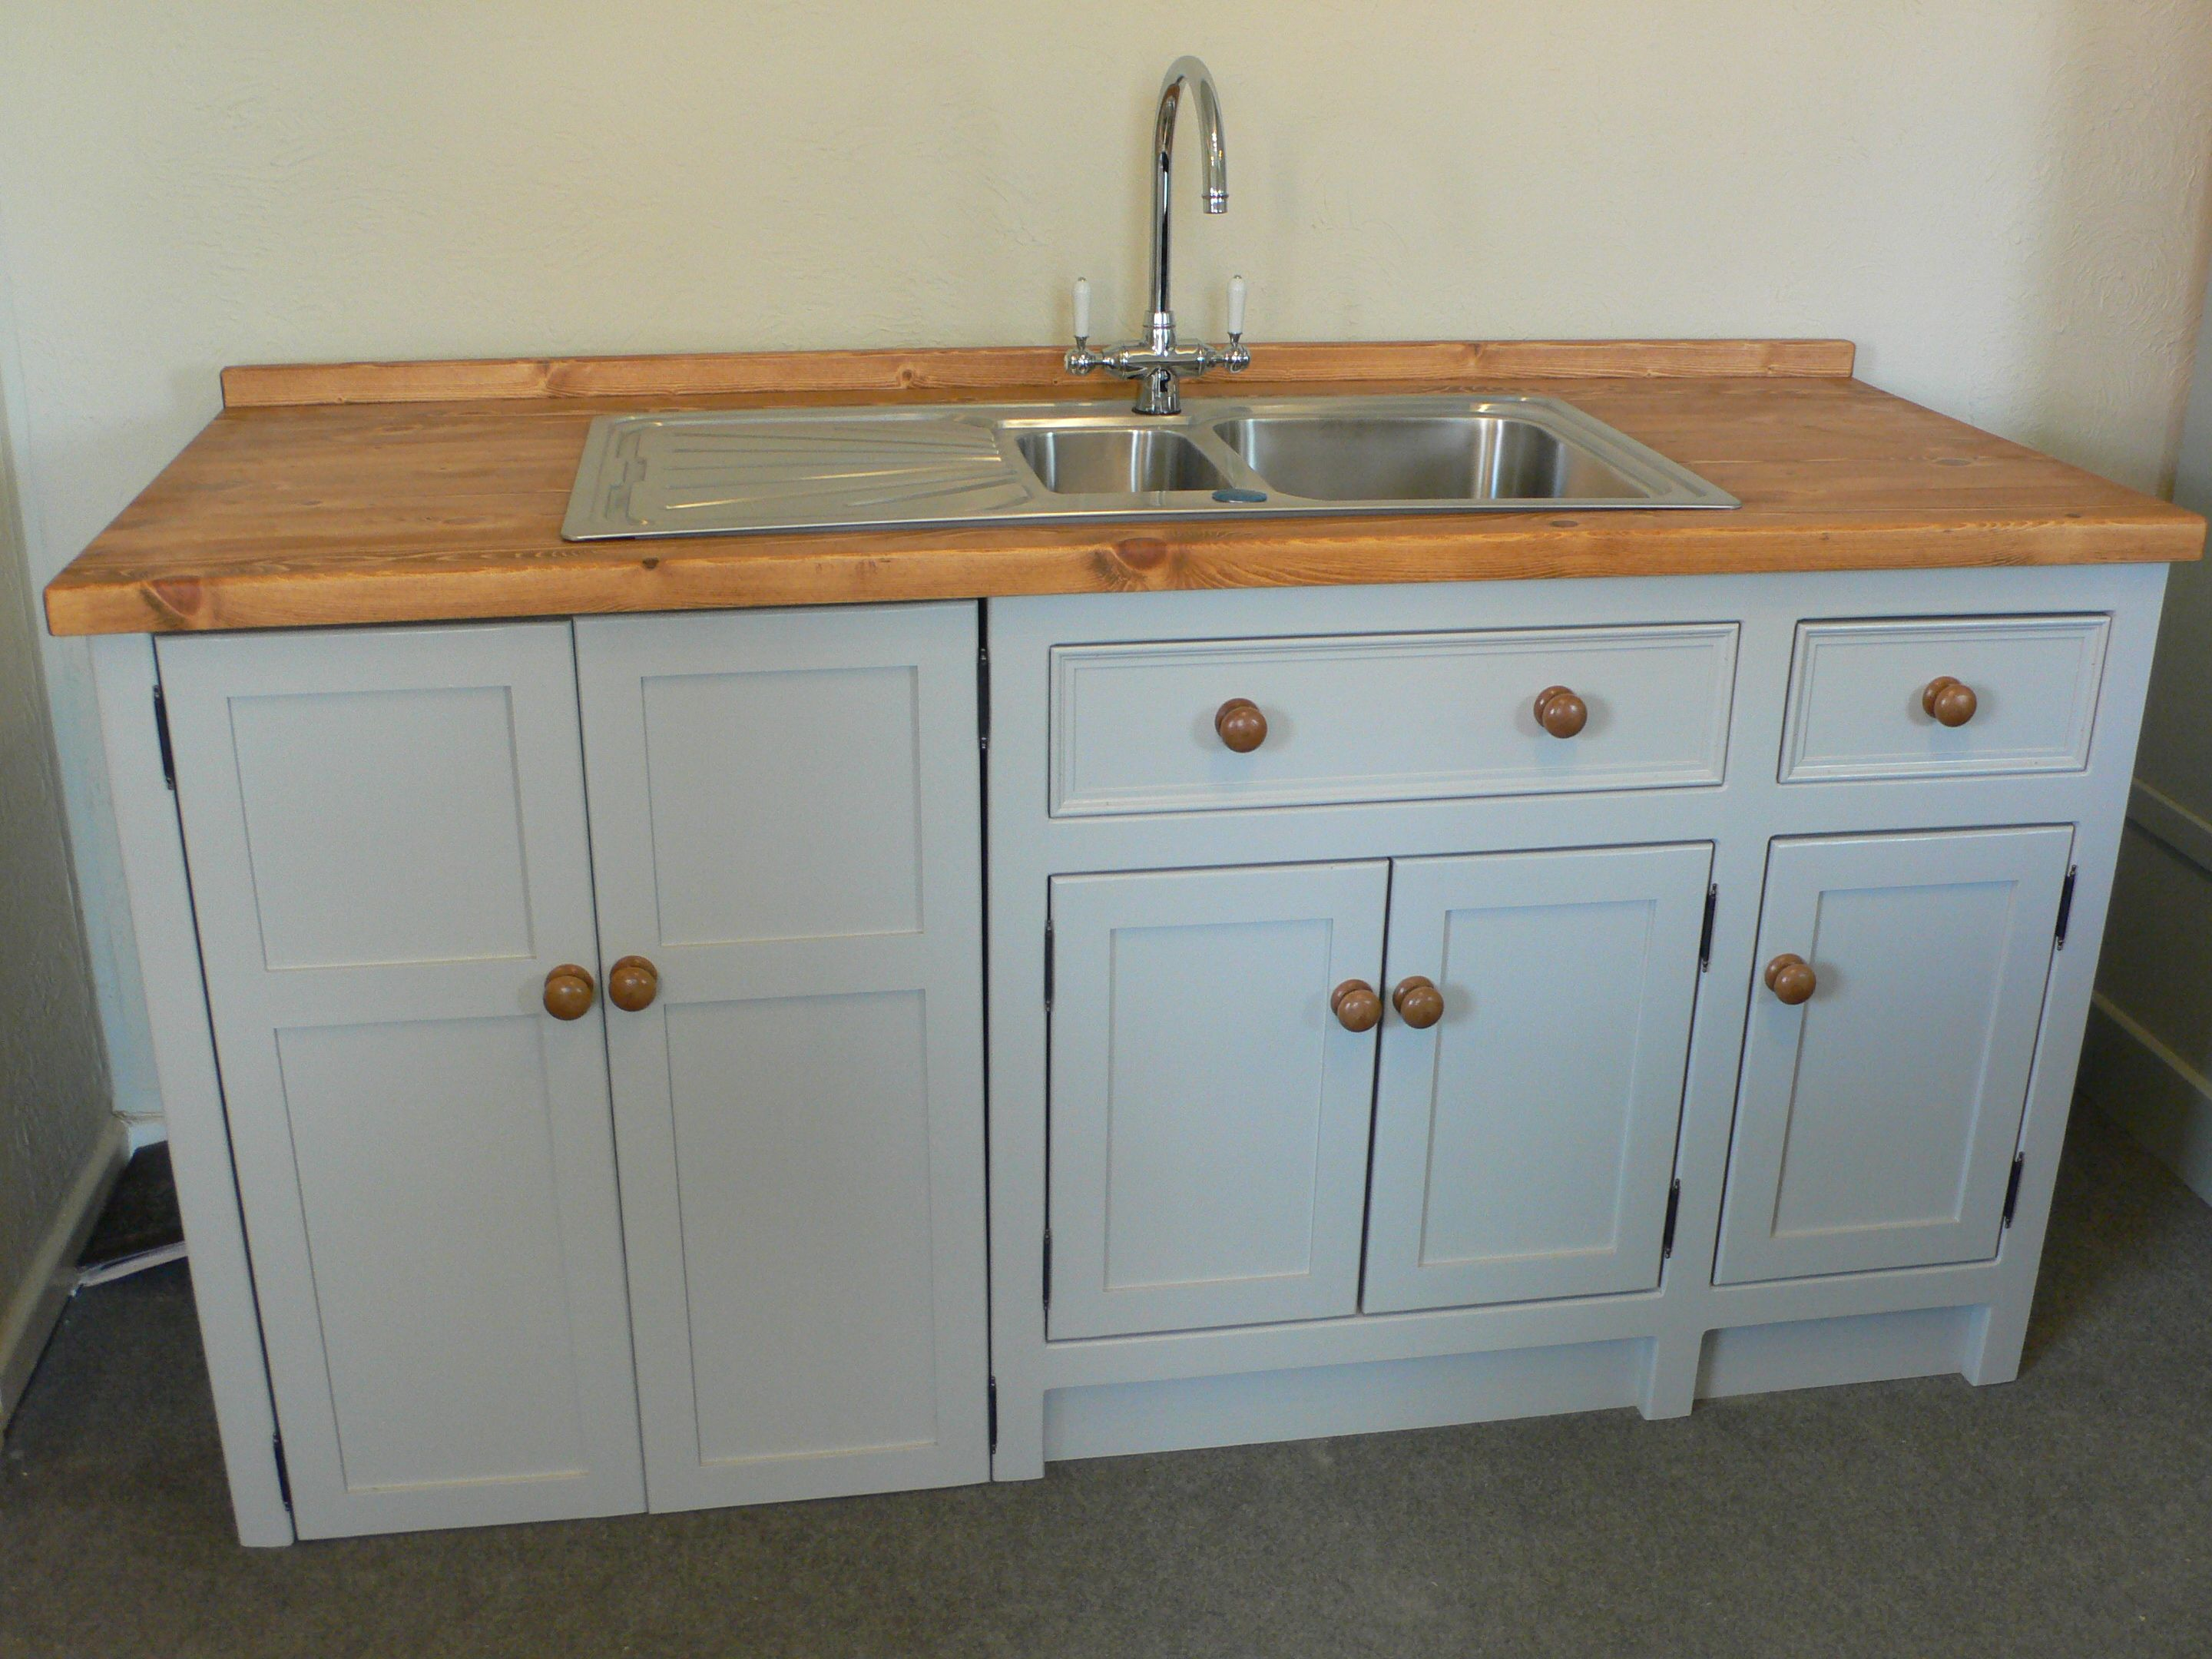 A Practical And Great Looking Freestanding Sink Unit For A Utility